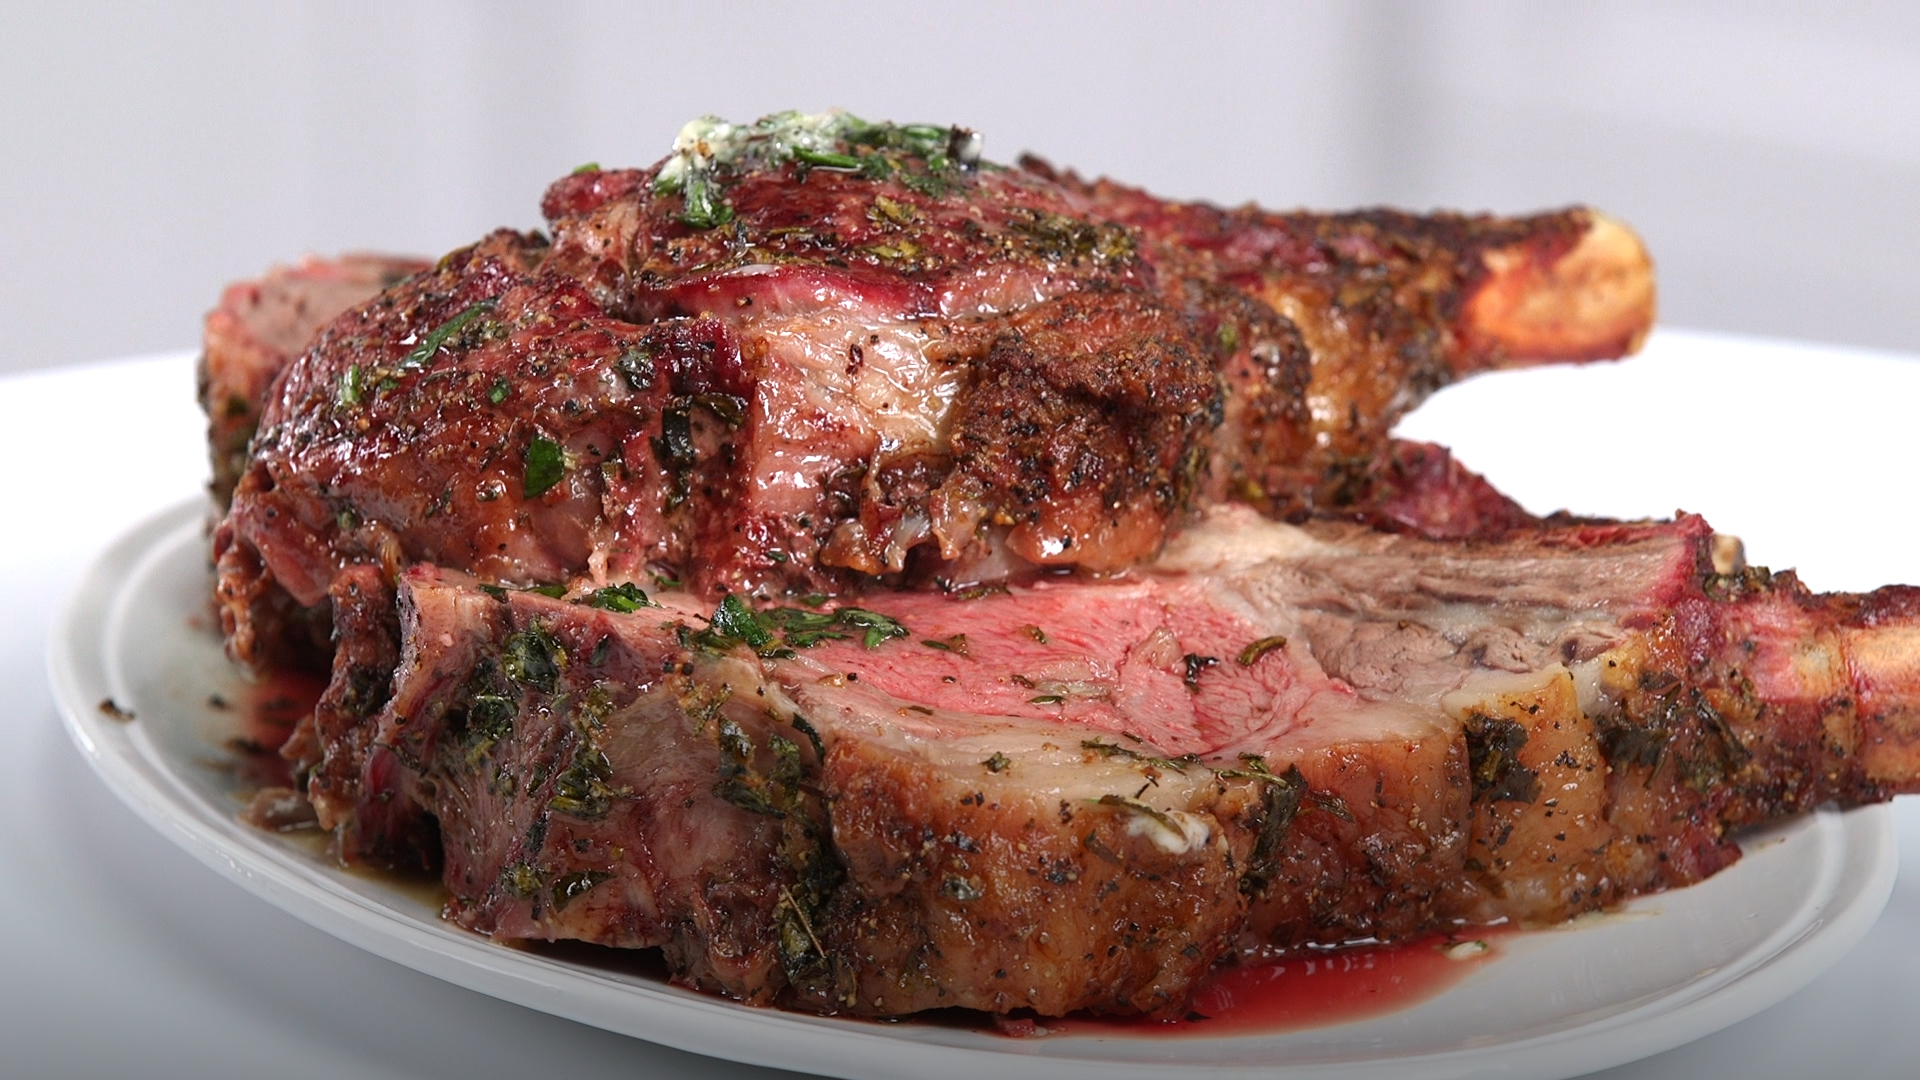 Chef Ray Lampe's Herbed Up Prime Rib